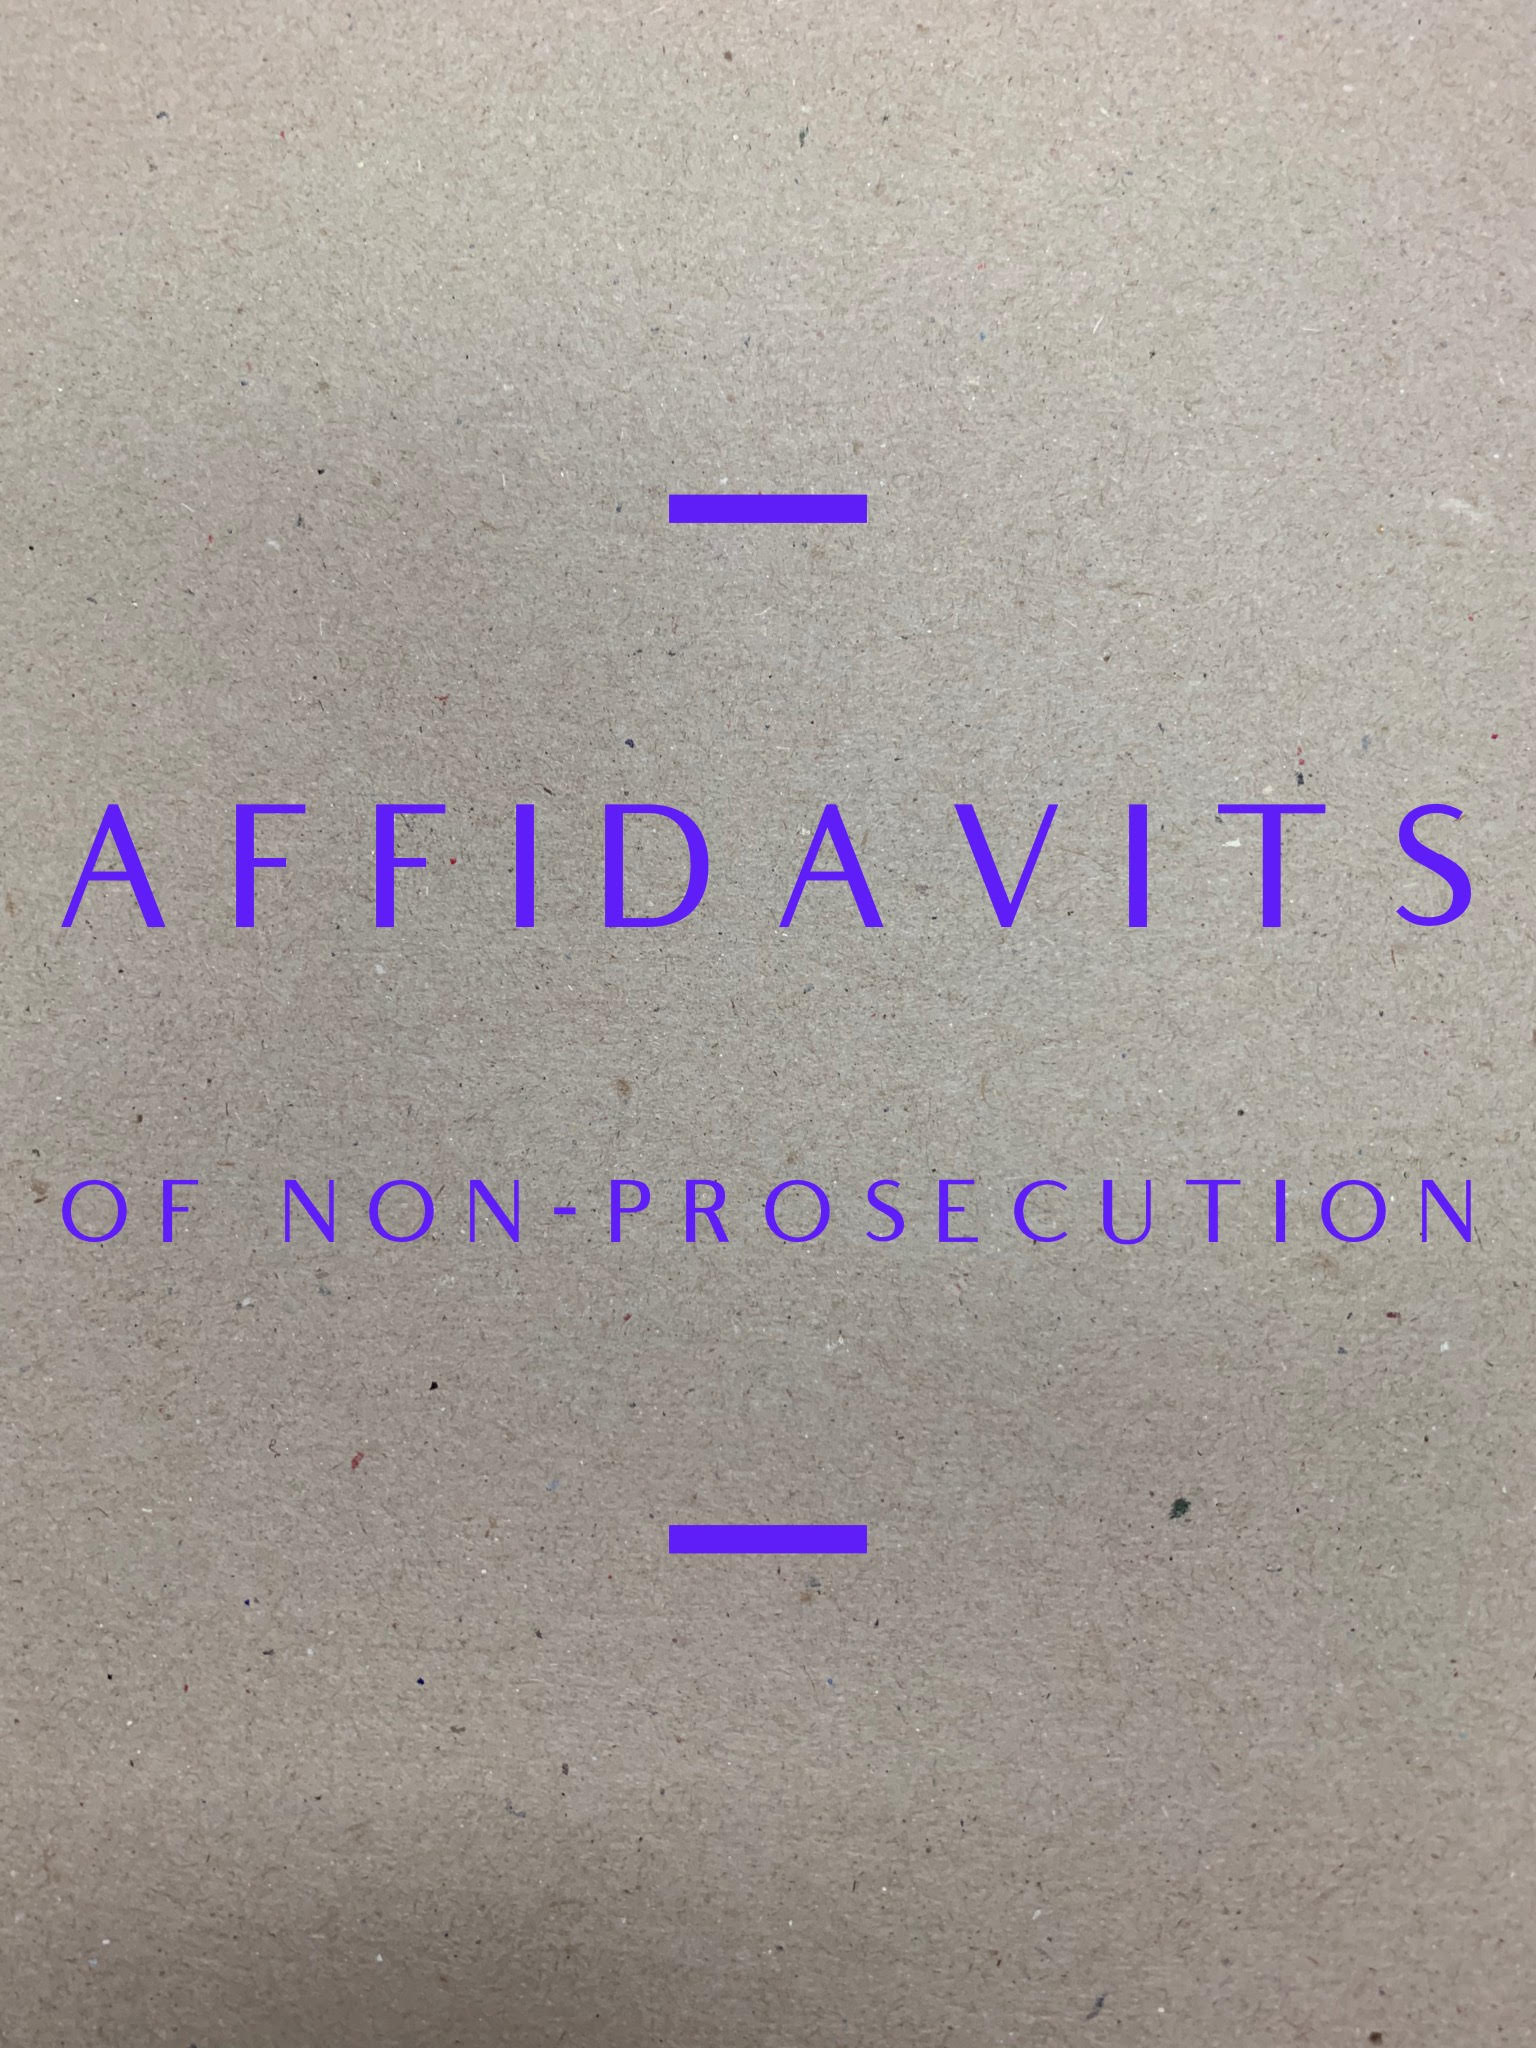 Affidavits of Non-Prosecution